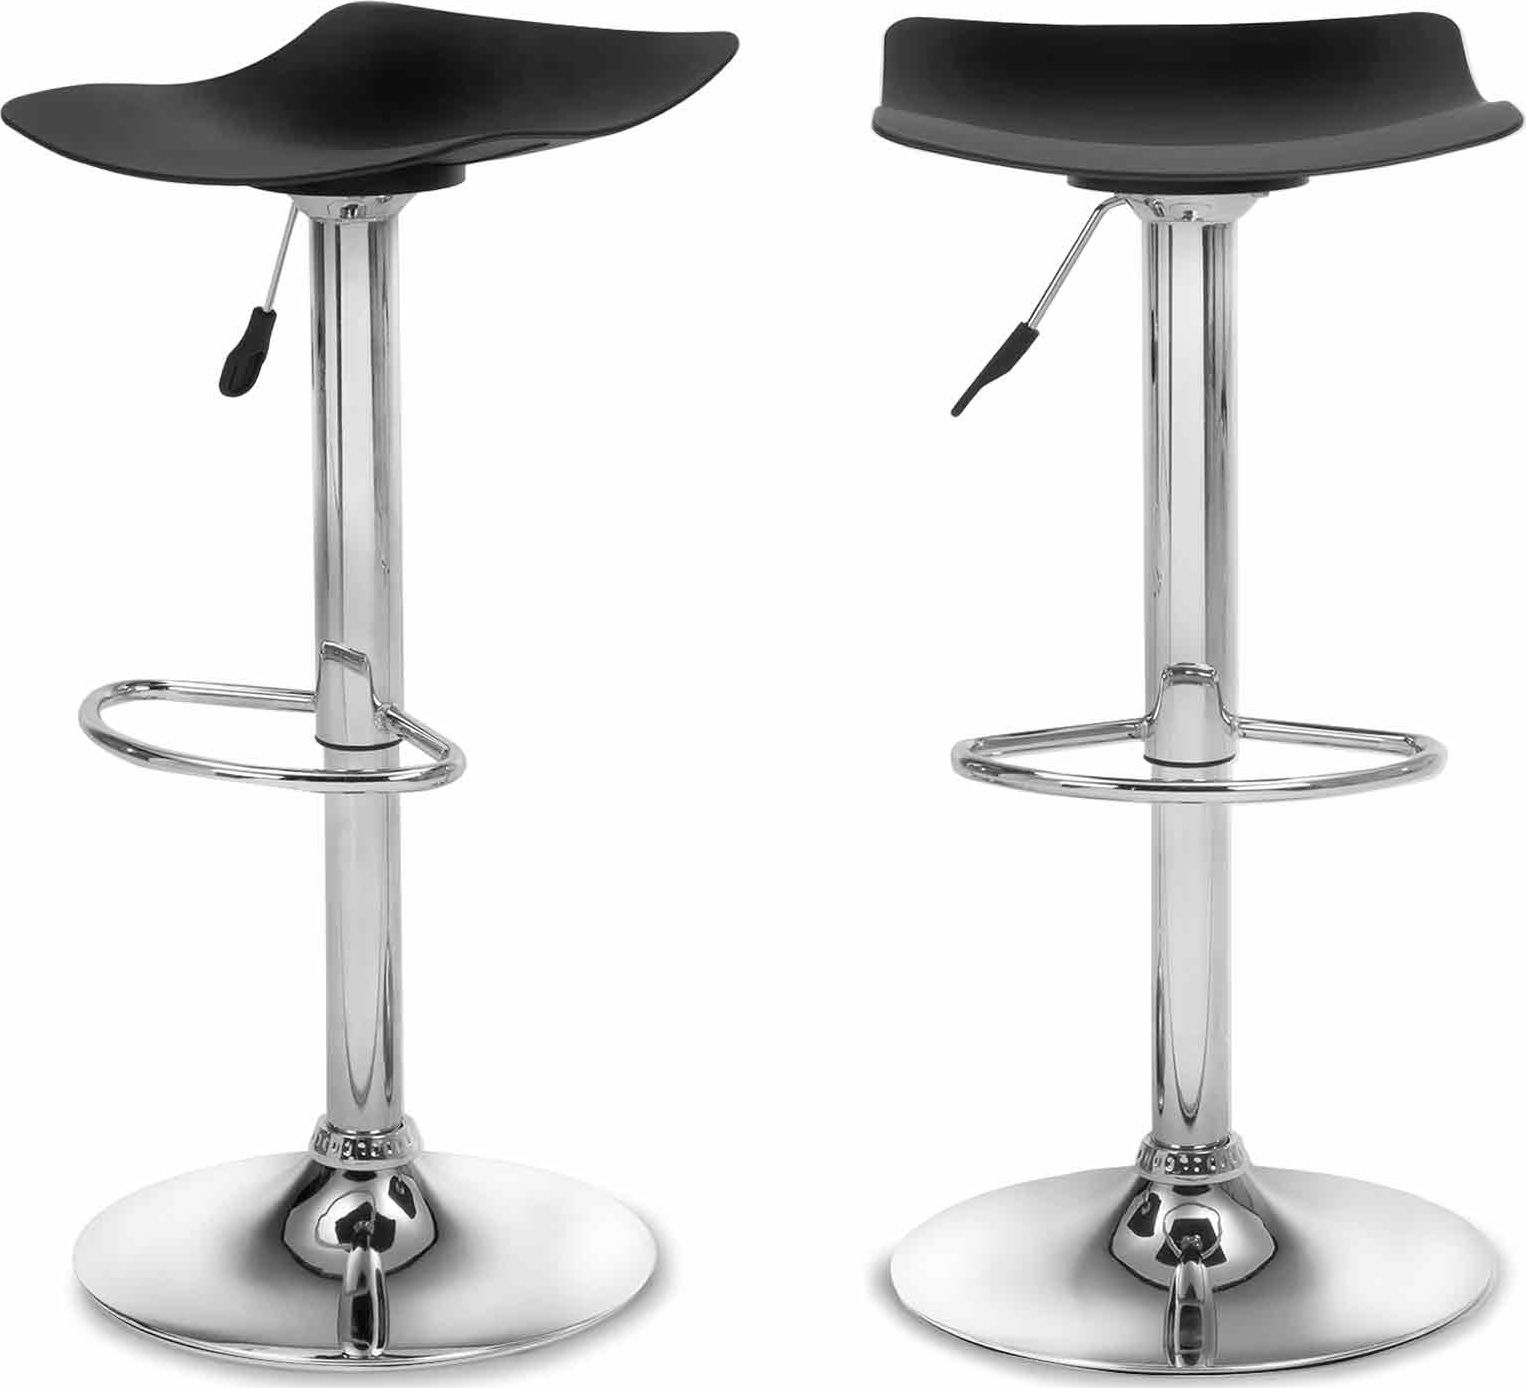 Sensational Made Black Bar Stool Products Adjustable Bar Stools Machost Co Dining Chair Design Ideas Machostcouk